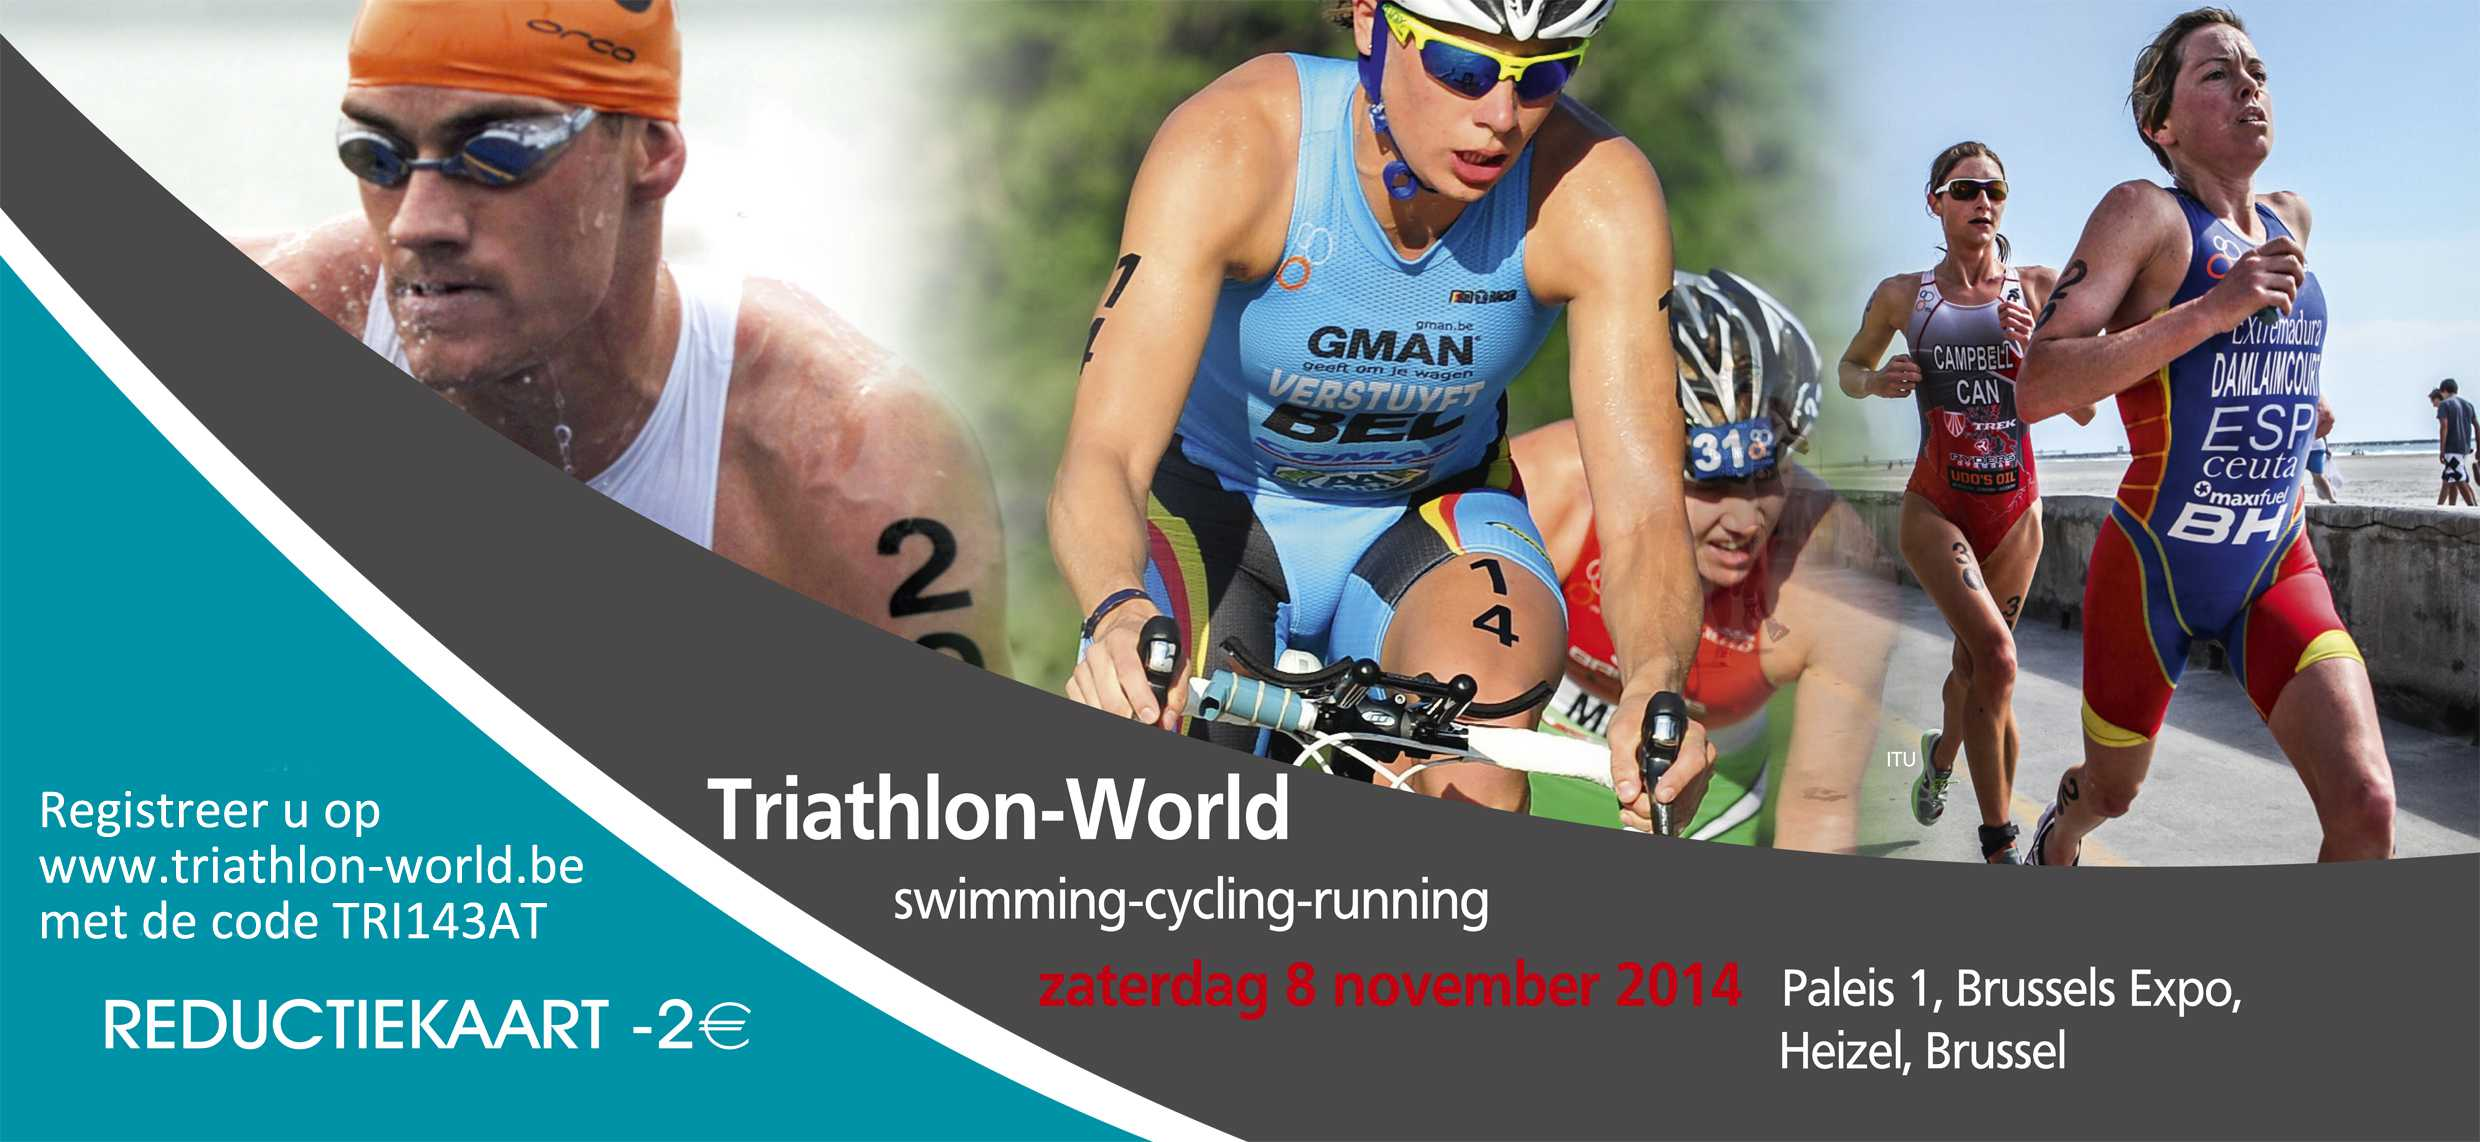 3 spraakmakende panels op Triathlon World